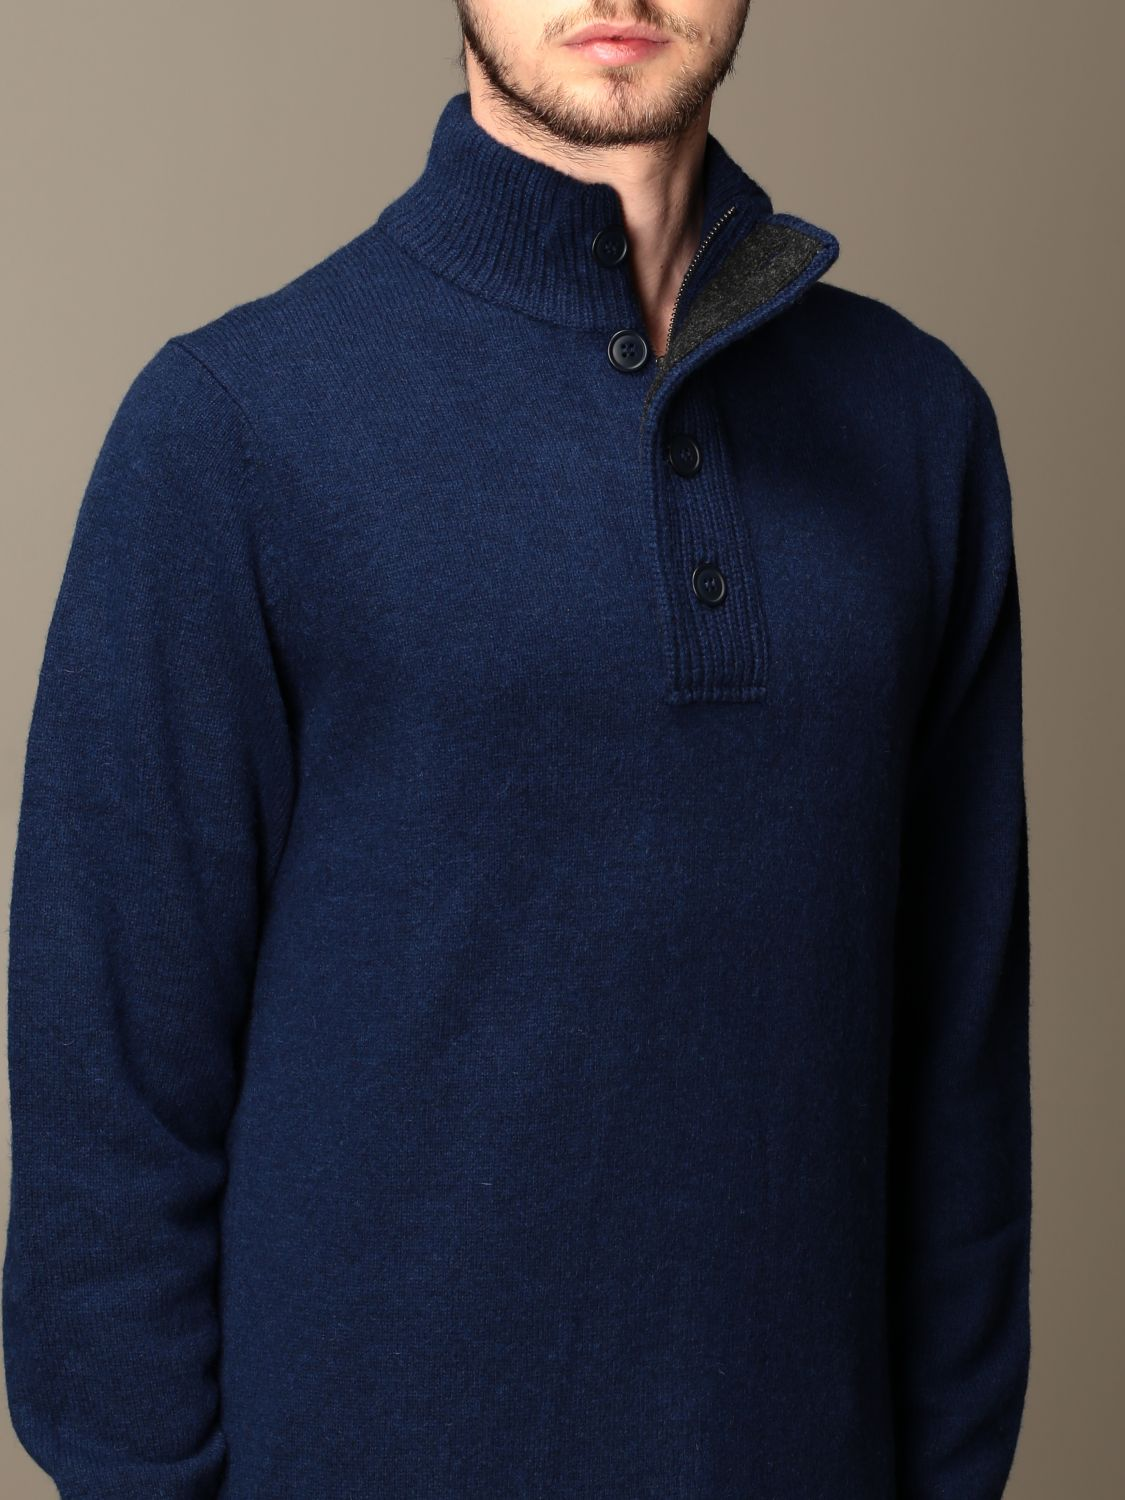 Pull Barbour: Pull homme Barbour bleu 3